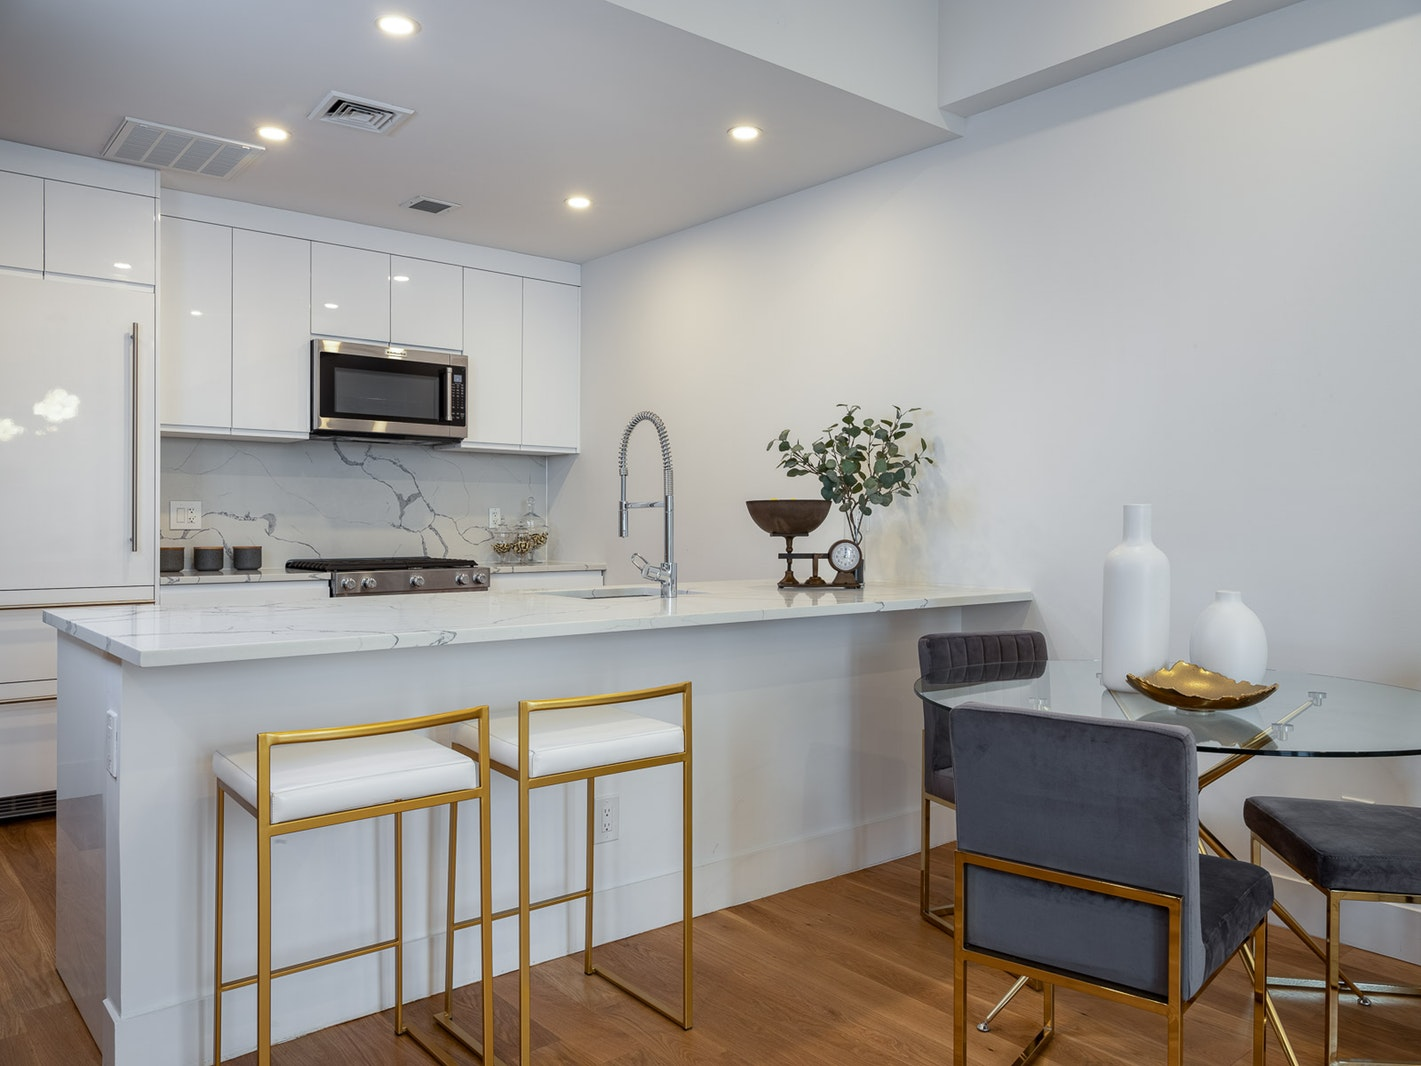 21 Powers Street 1c, Williamsburg, Brooklyn, NY, 11217, $1,350,000, Property For Sale, Halstead Real Estate, Photo 3